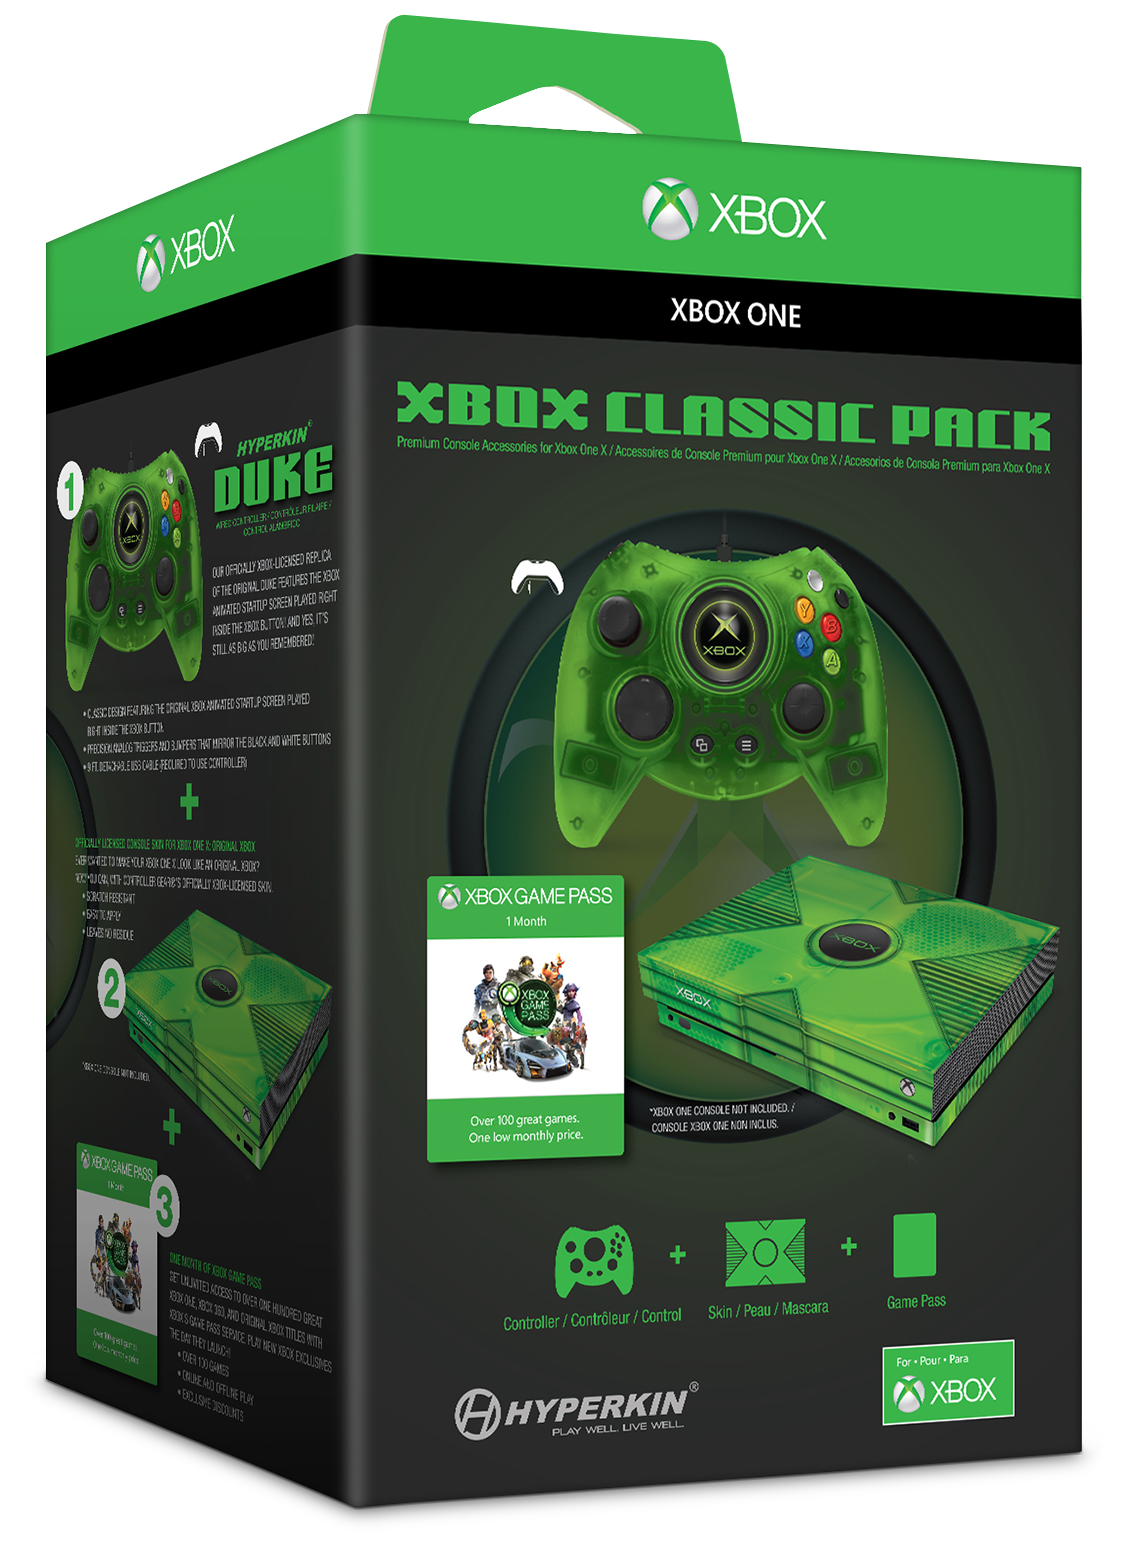 green Xbox controller in packaging